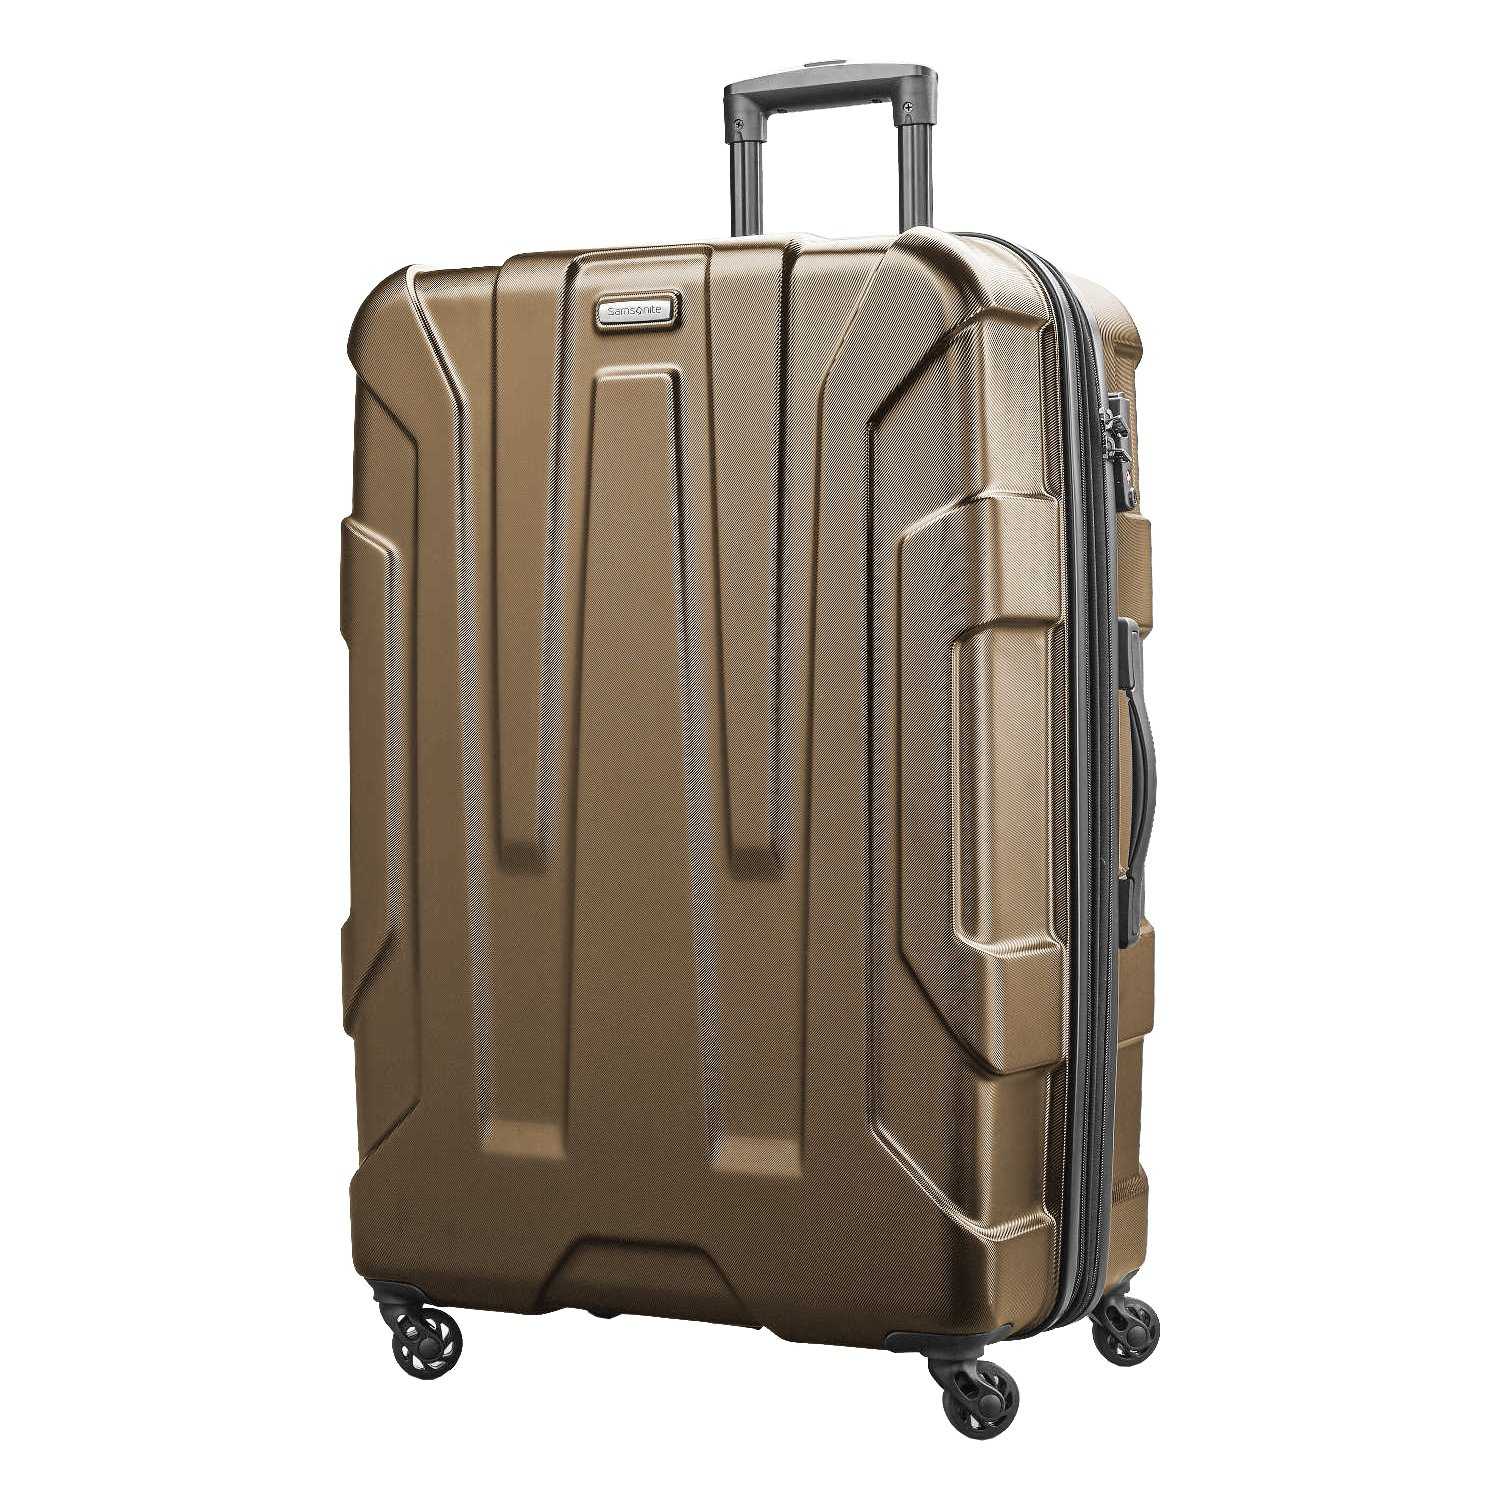 Samsonite Centric Expandable Hardside Checked Luggage with Spinner Wheels, 28 Inch, Blue Slate Samsonite Drop Ship Code 102690-1101